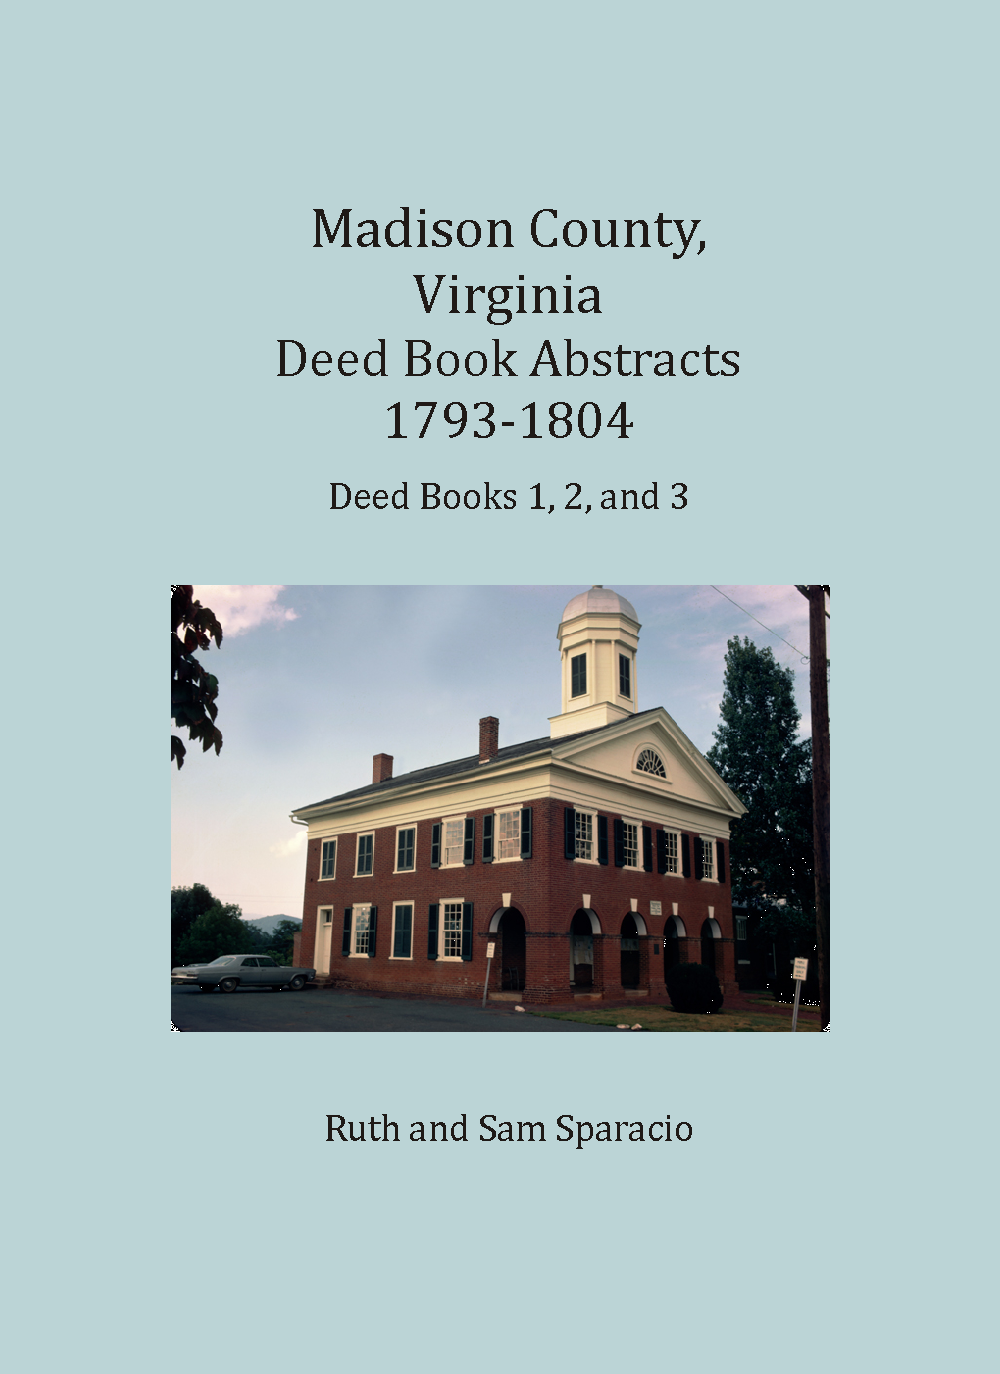 Madison County, Virginia Deed Book Abstracts, 1793-1804